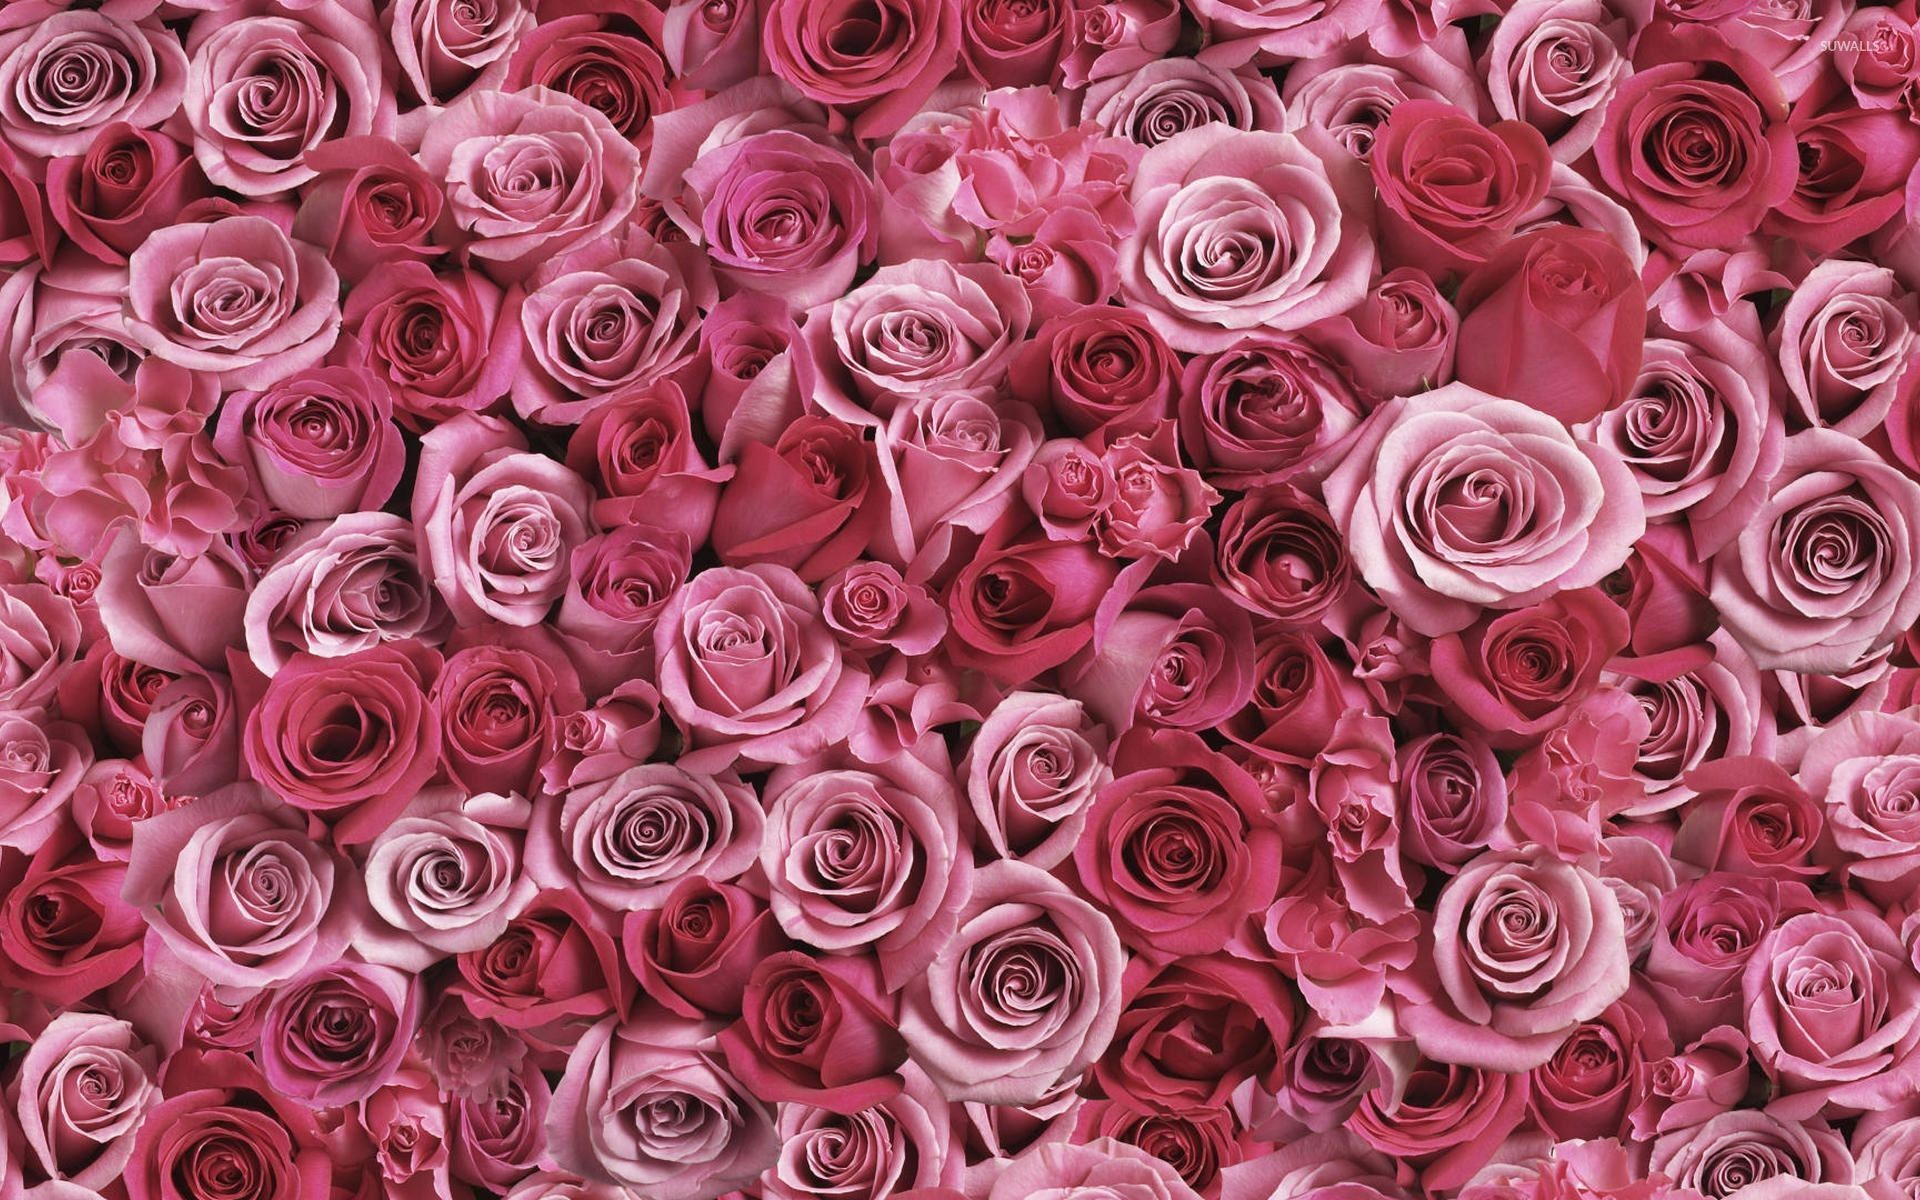 1920x1200 A lot of pink roses wallpaper  jpg